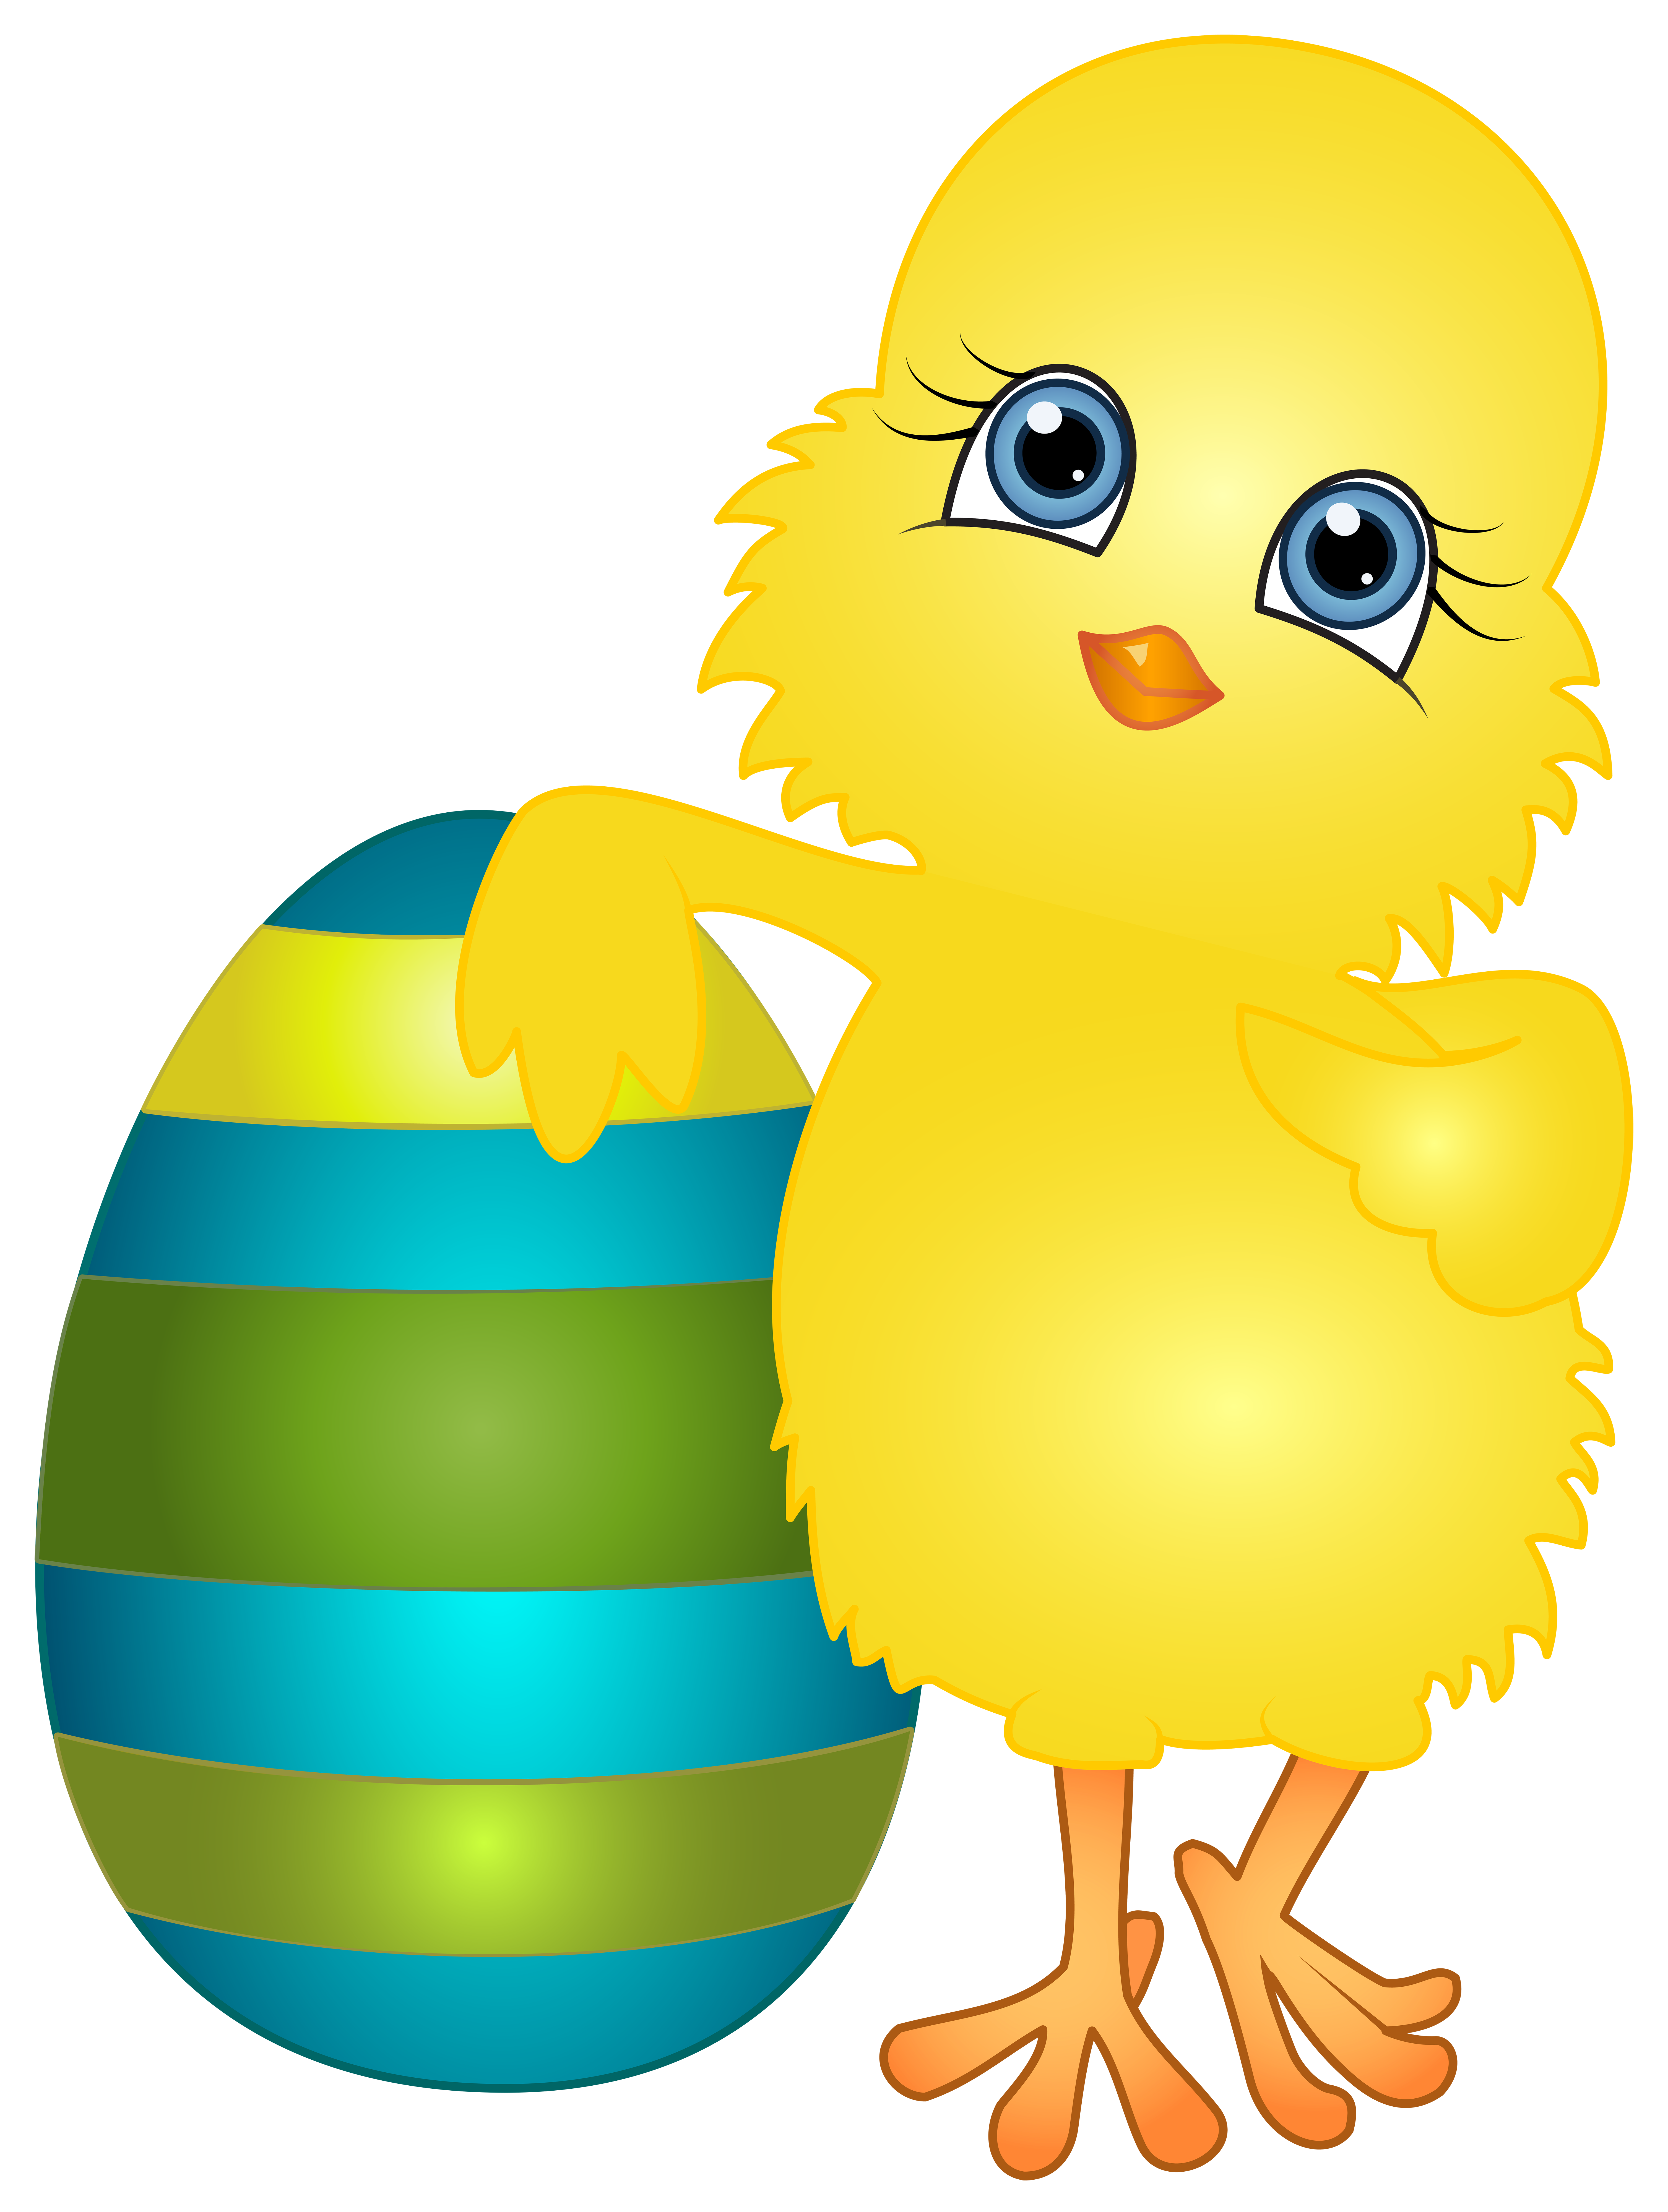 Chicken playing baseball clipart clip royalty free download Easter Chicken with Egg PNG Clip Art Image | Gallery Yopriceville ... clip royalty free download